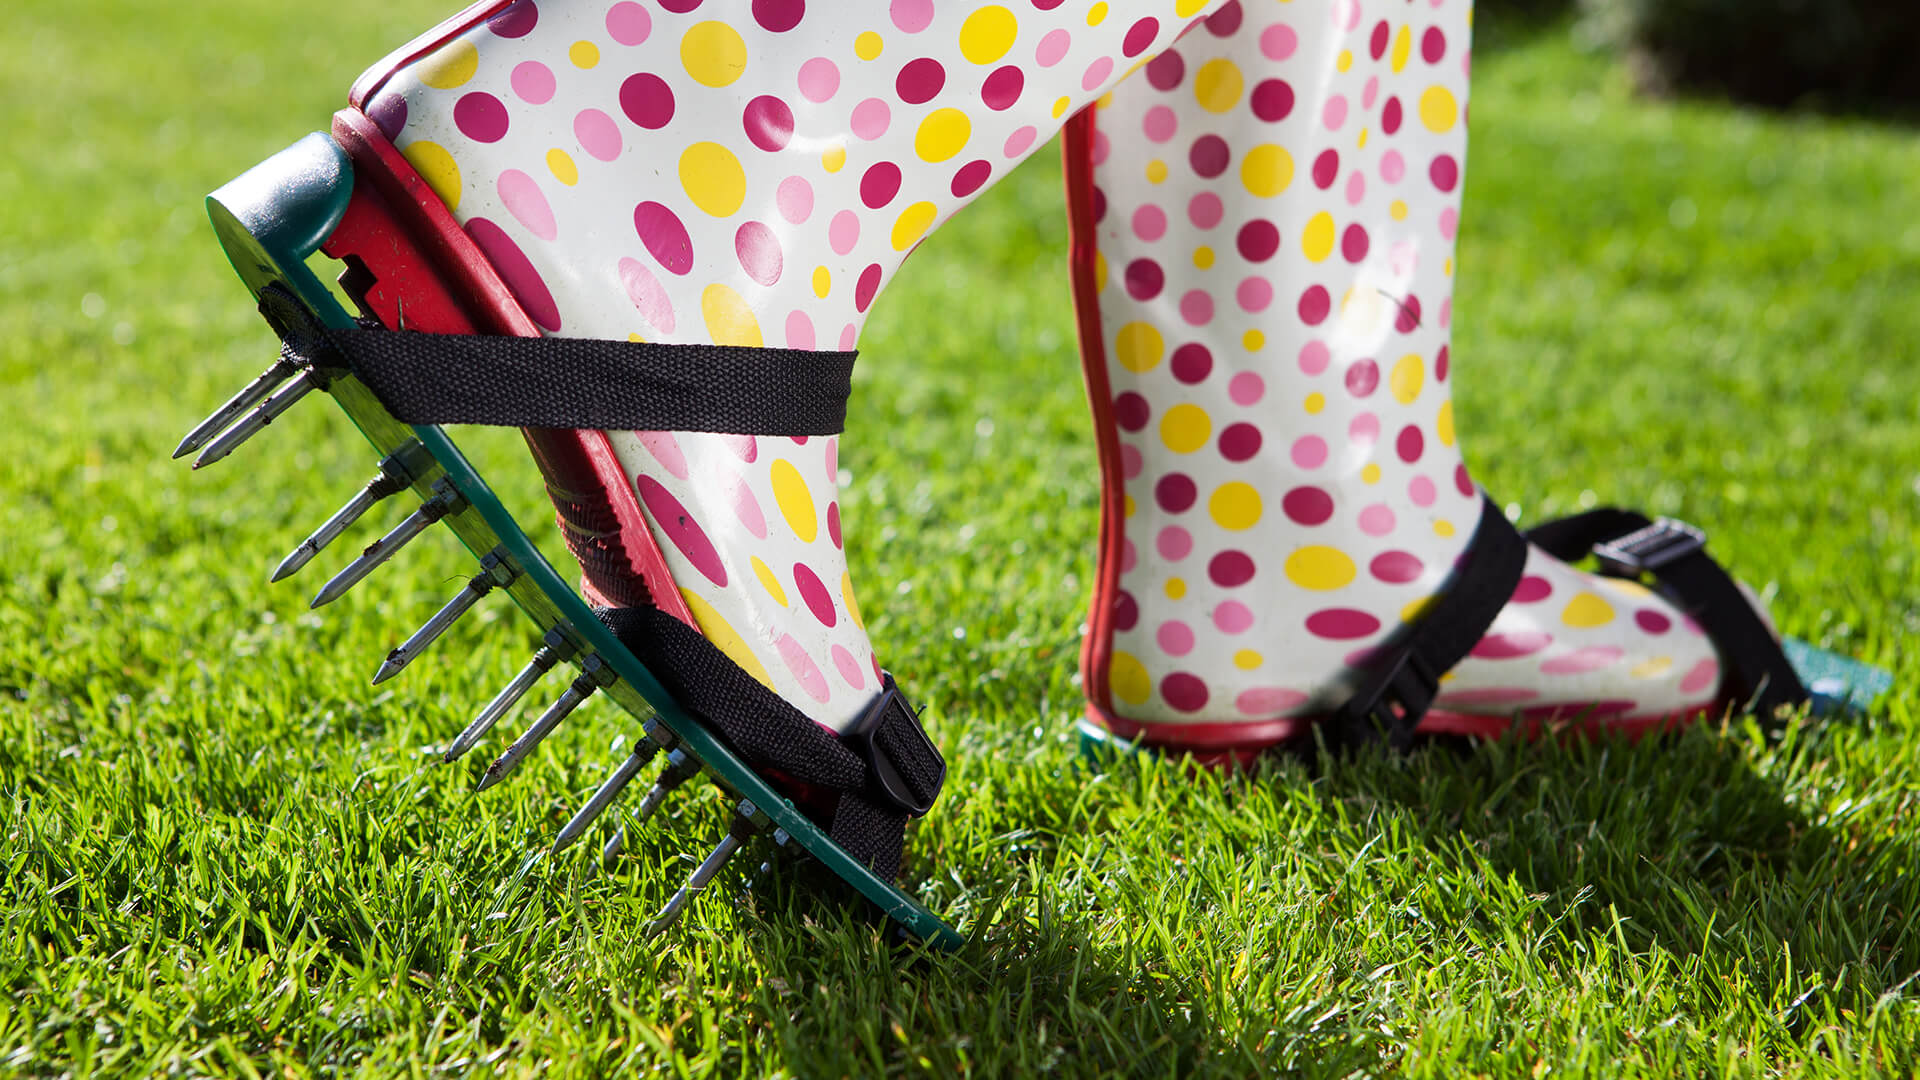 How to look after your lawn